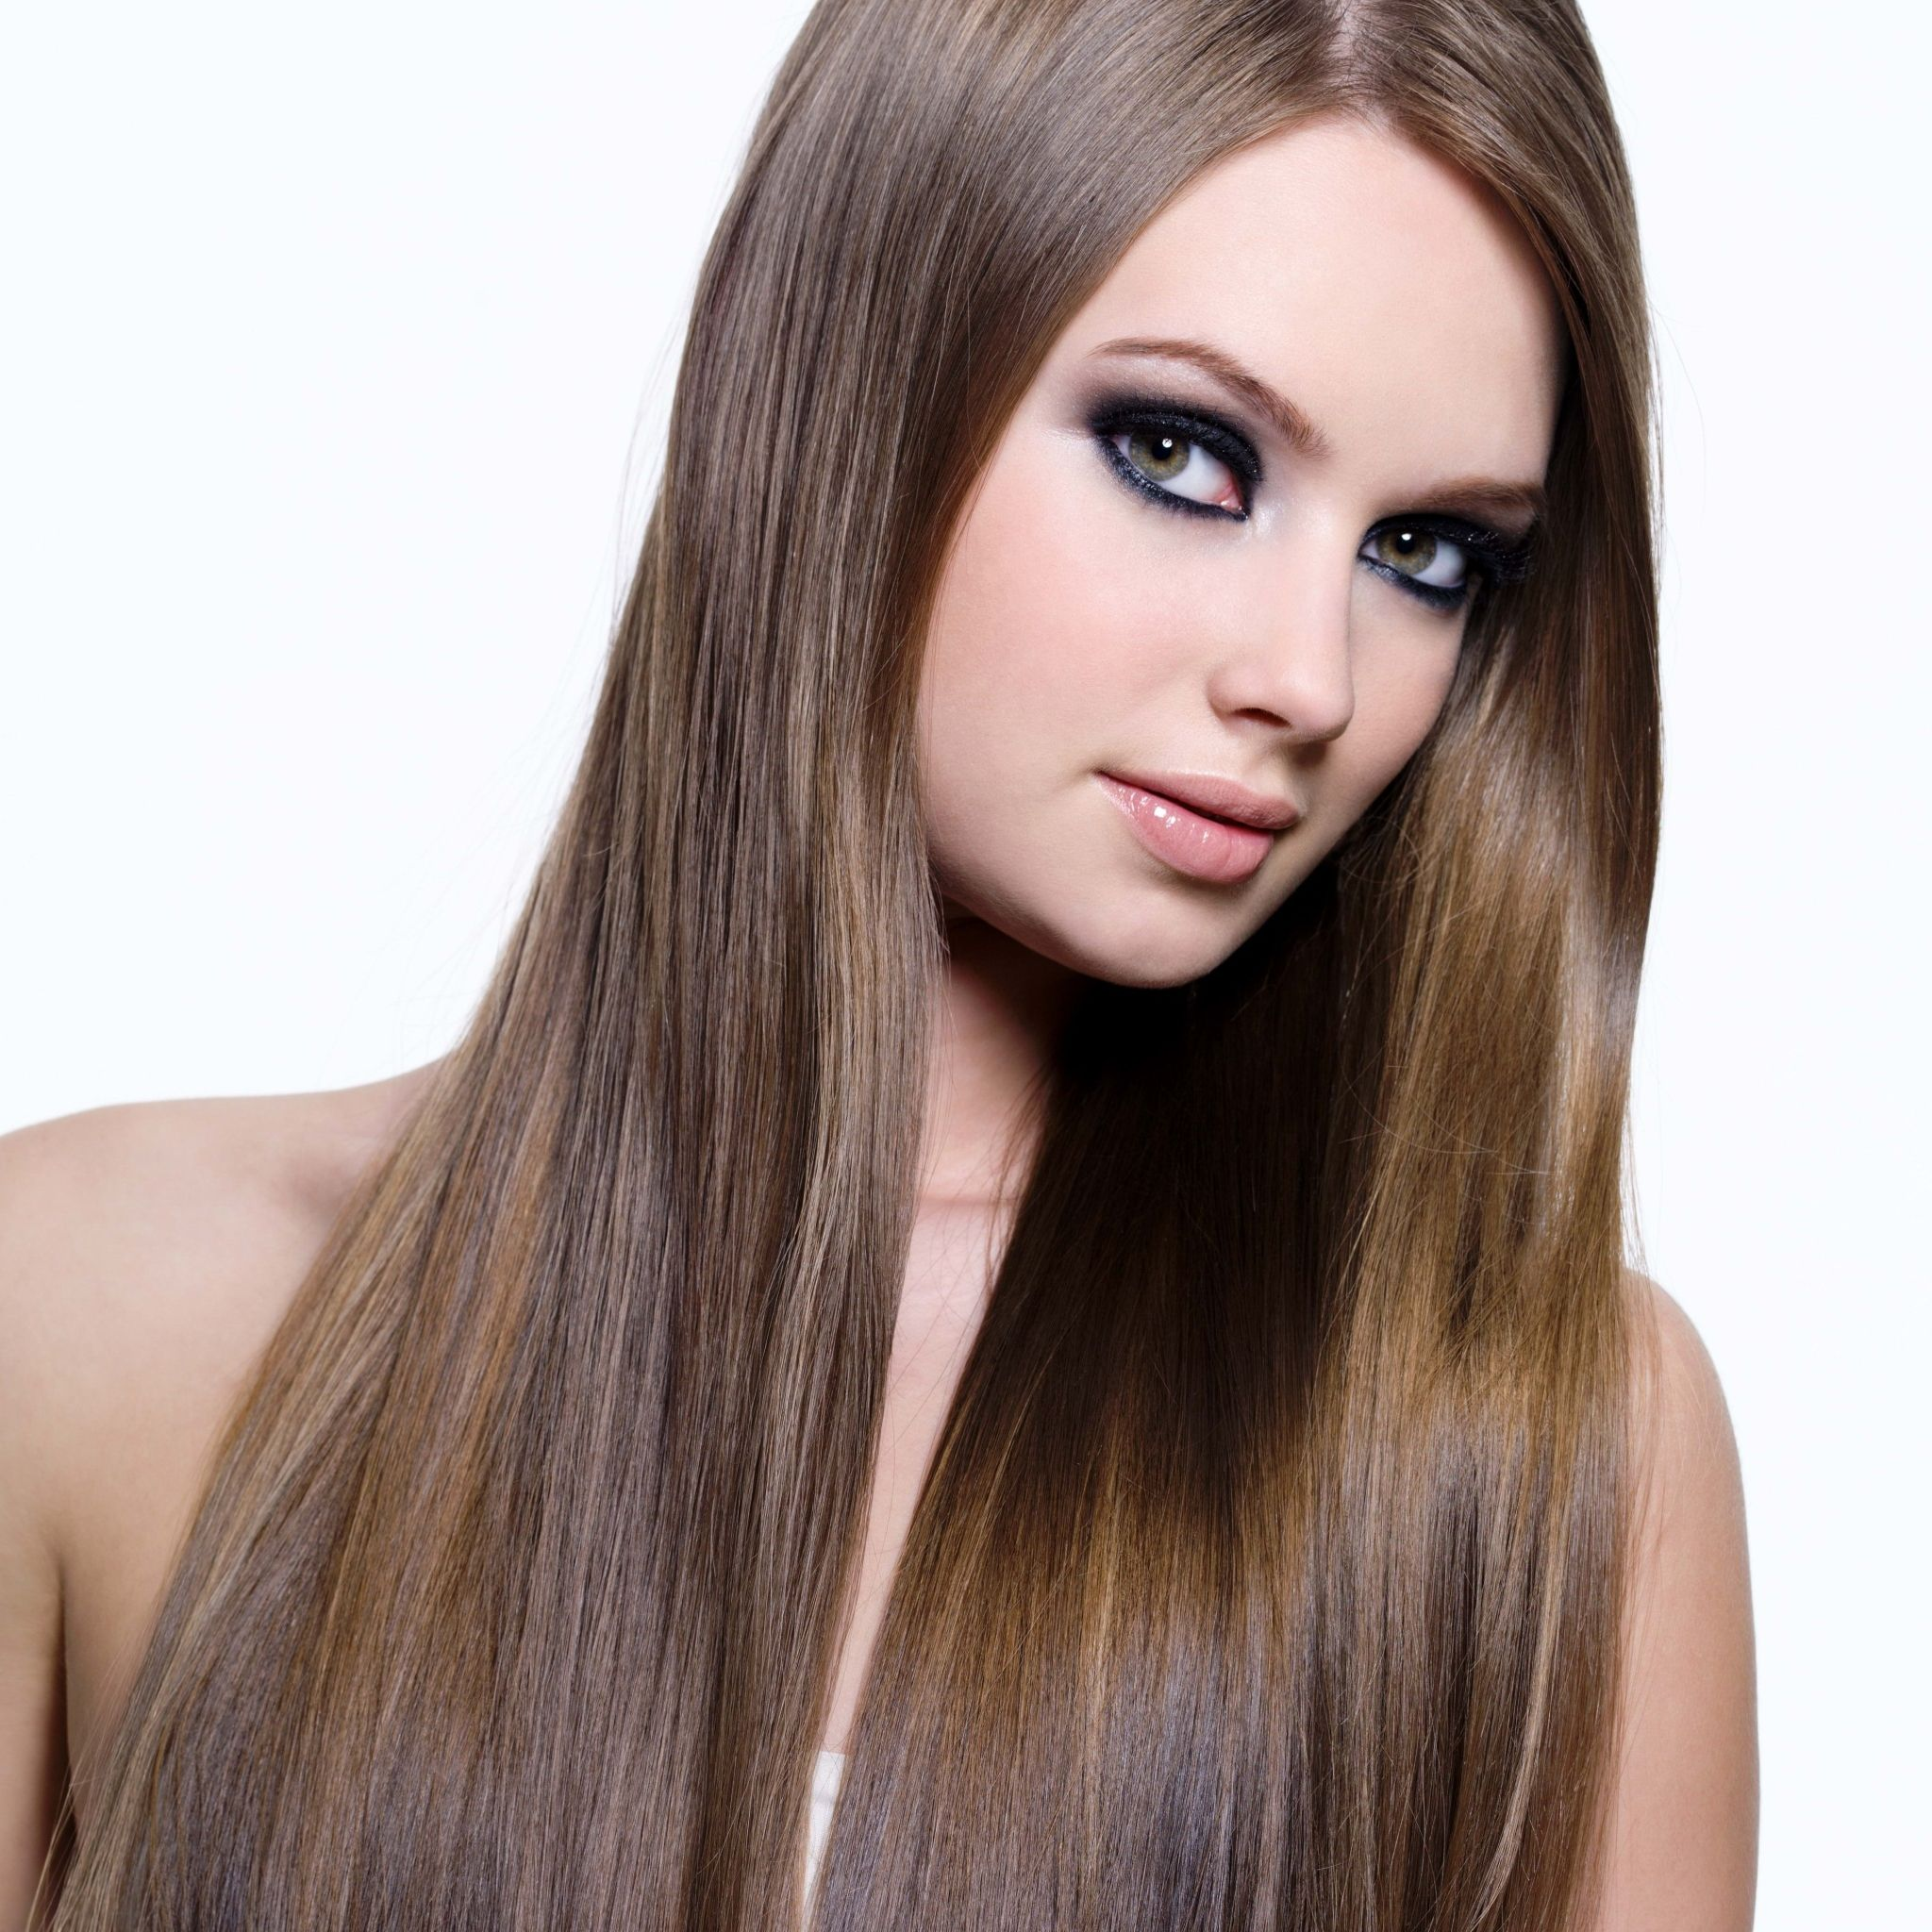 This Is The Image Gallery Of Cute Hairstyles For Long Hair 2014. You Are  Currently Viewing Girl With Long Hair. All Other Images From This Gallery  Are Given ...